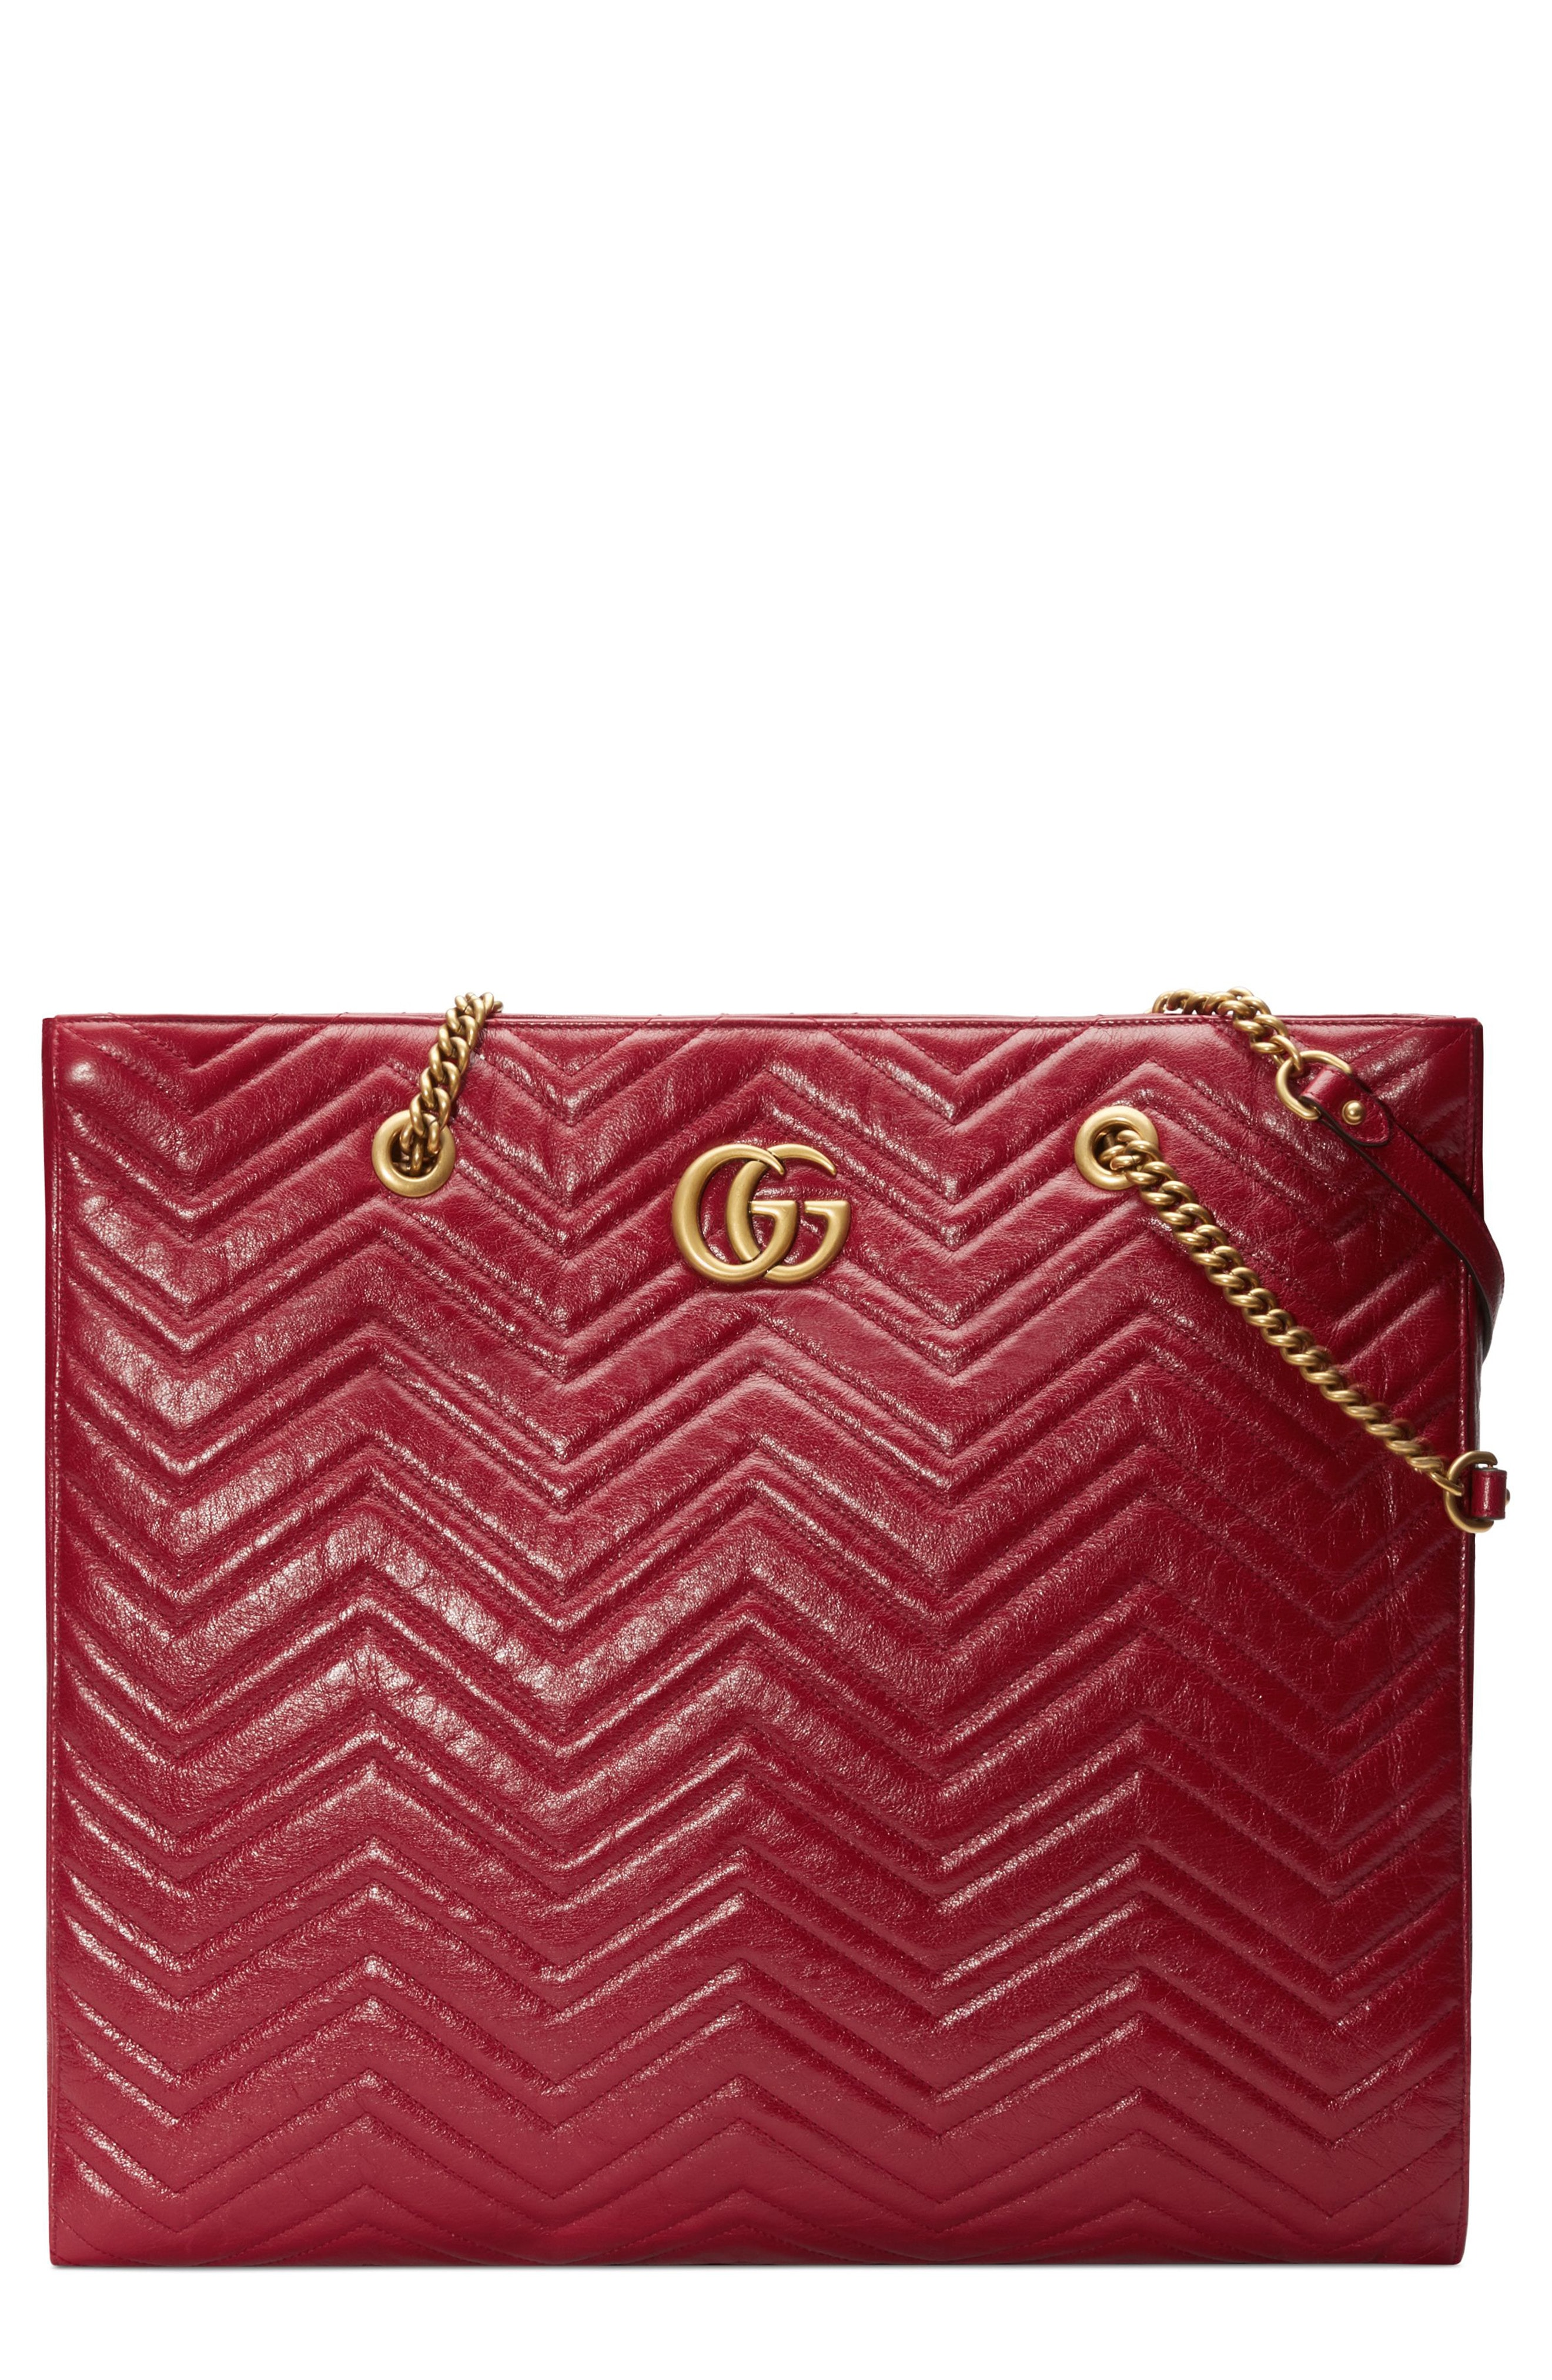 Gucci GG Marmont 2.0 Matelass Leather North/South Tote Bag